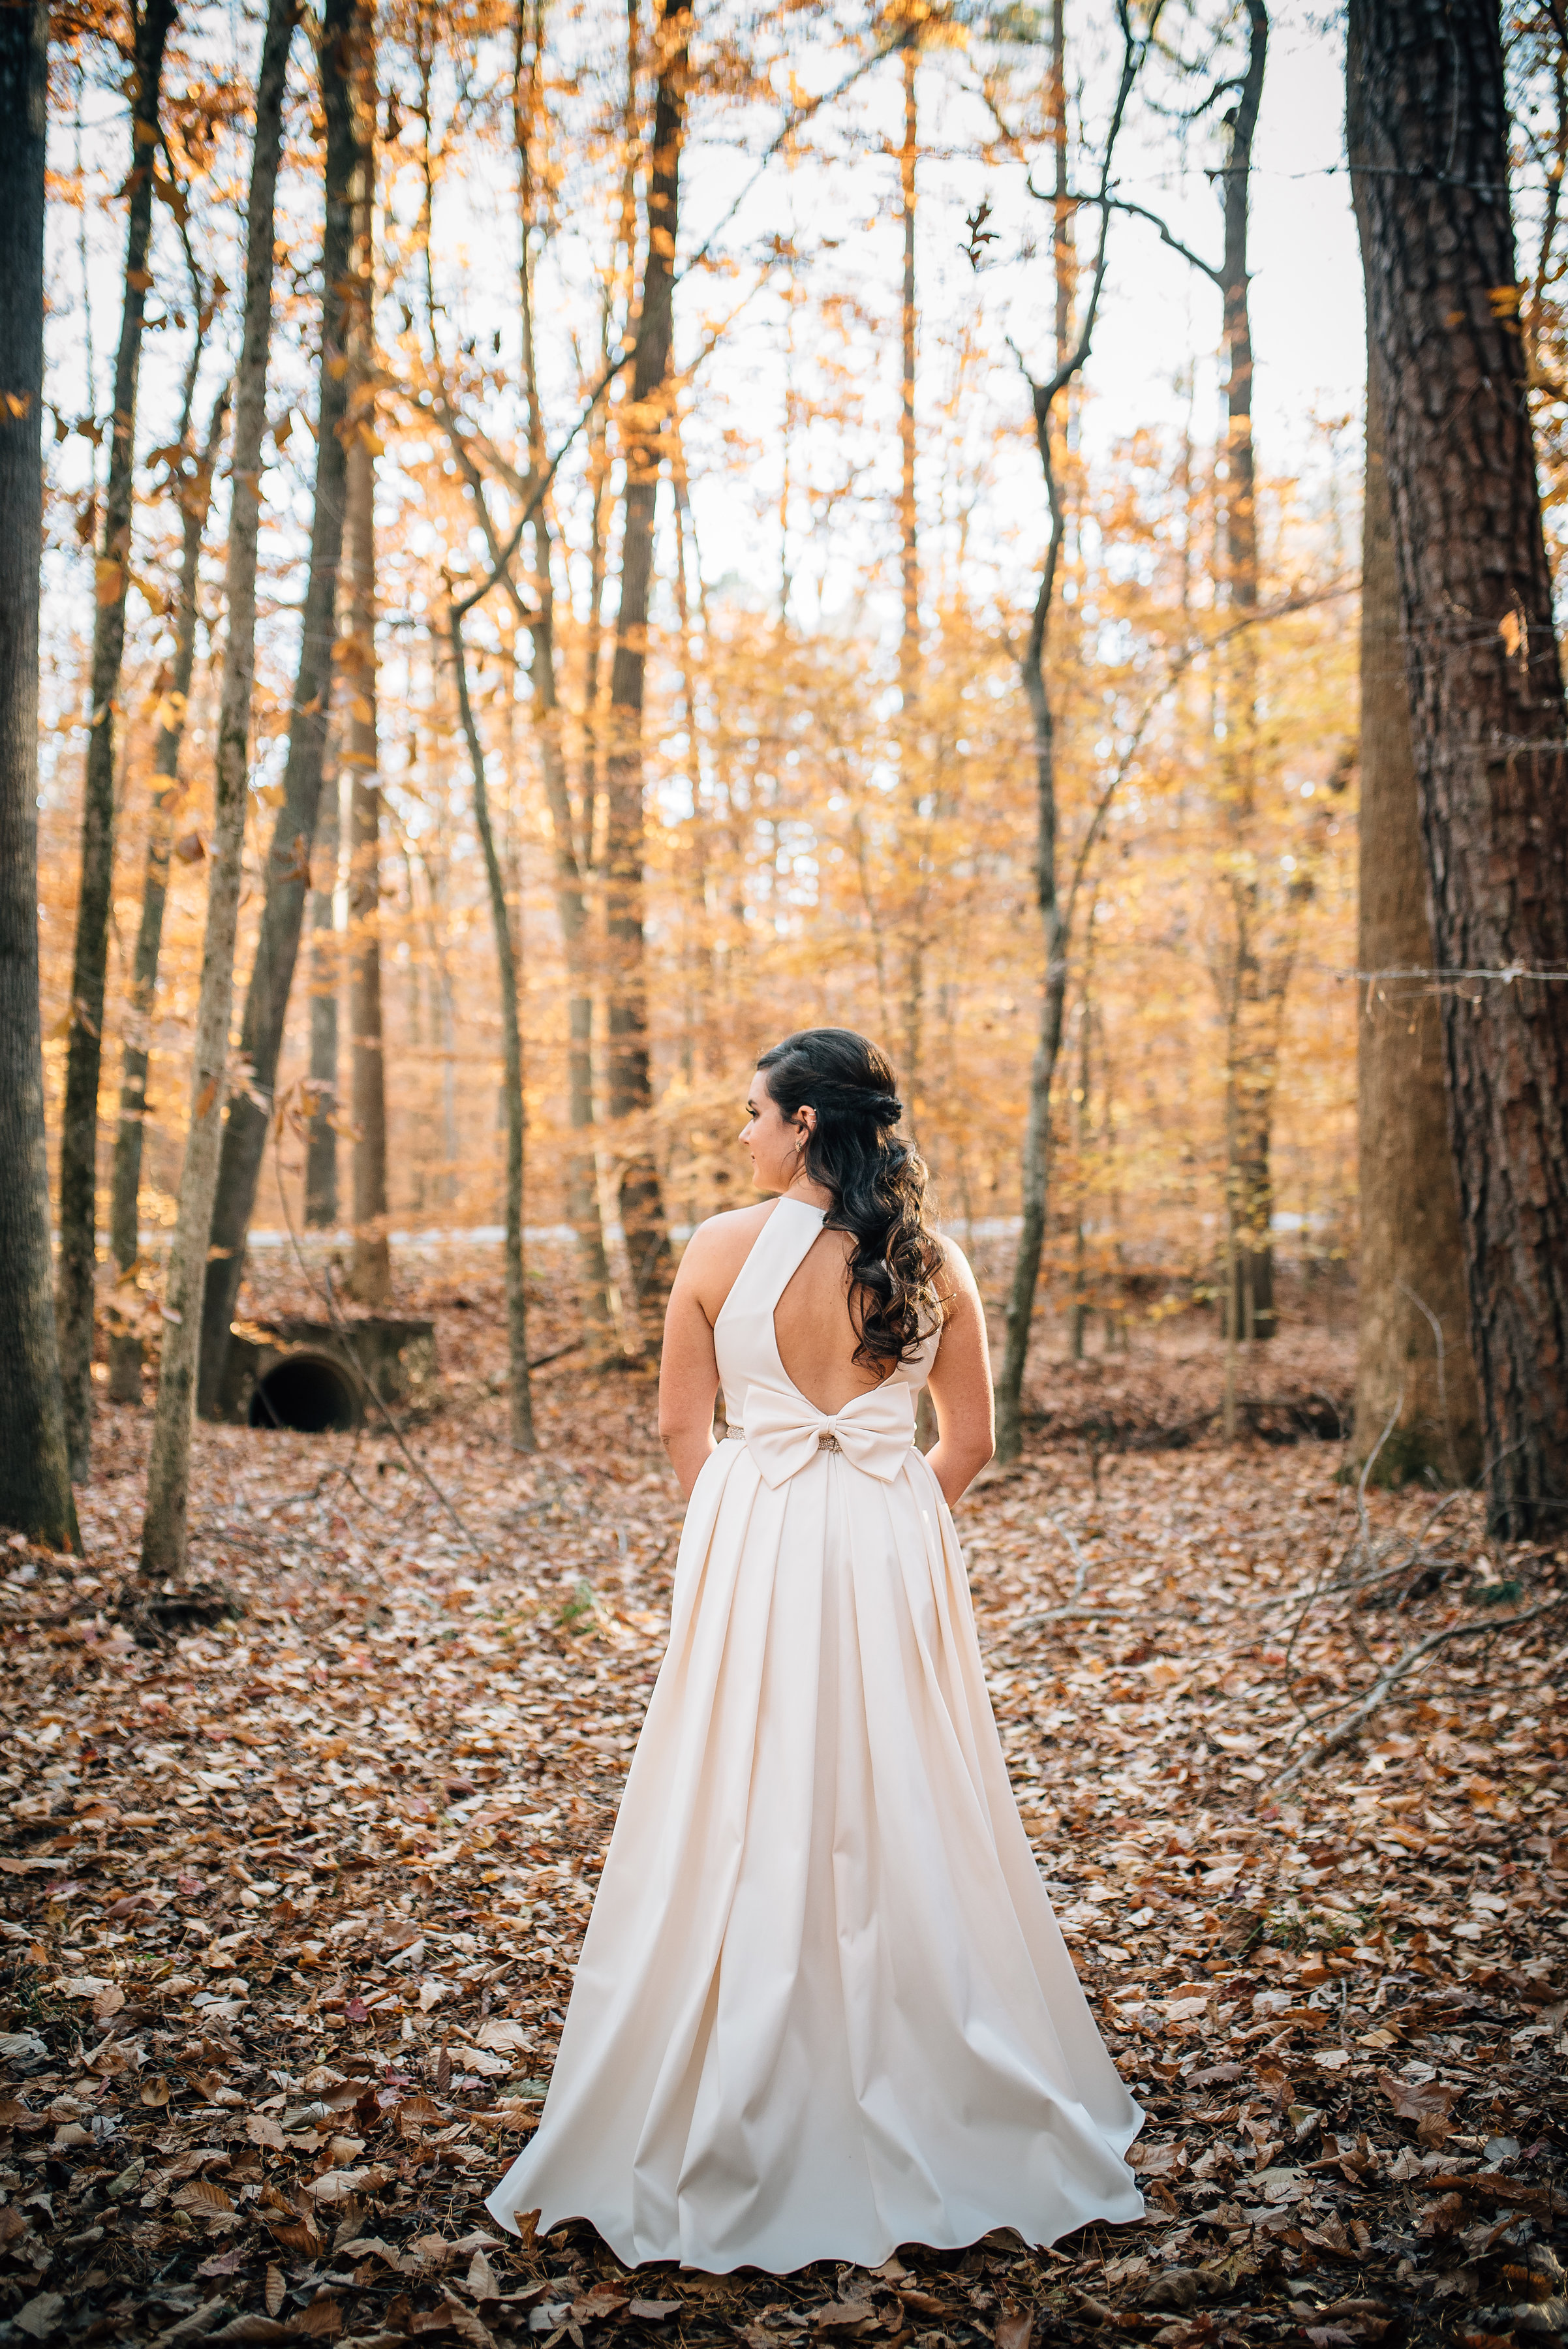 North Carolina Wedding Photographer - Raleigh Wedding Photographer - Bridal Portraits in the Woods